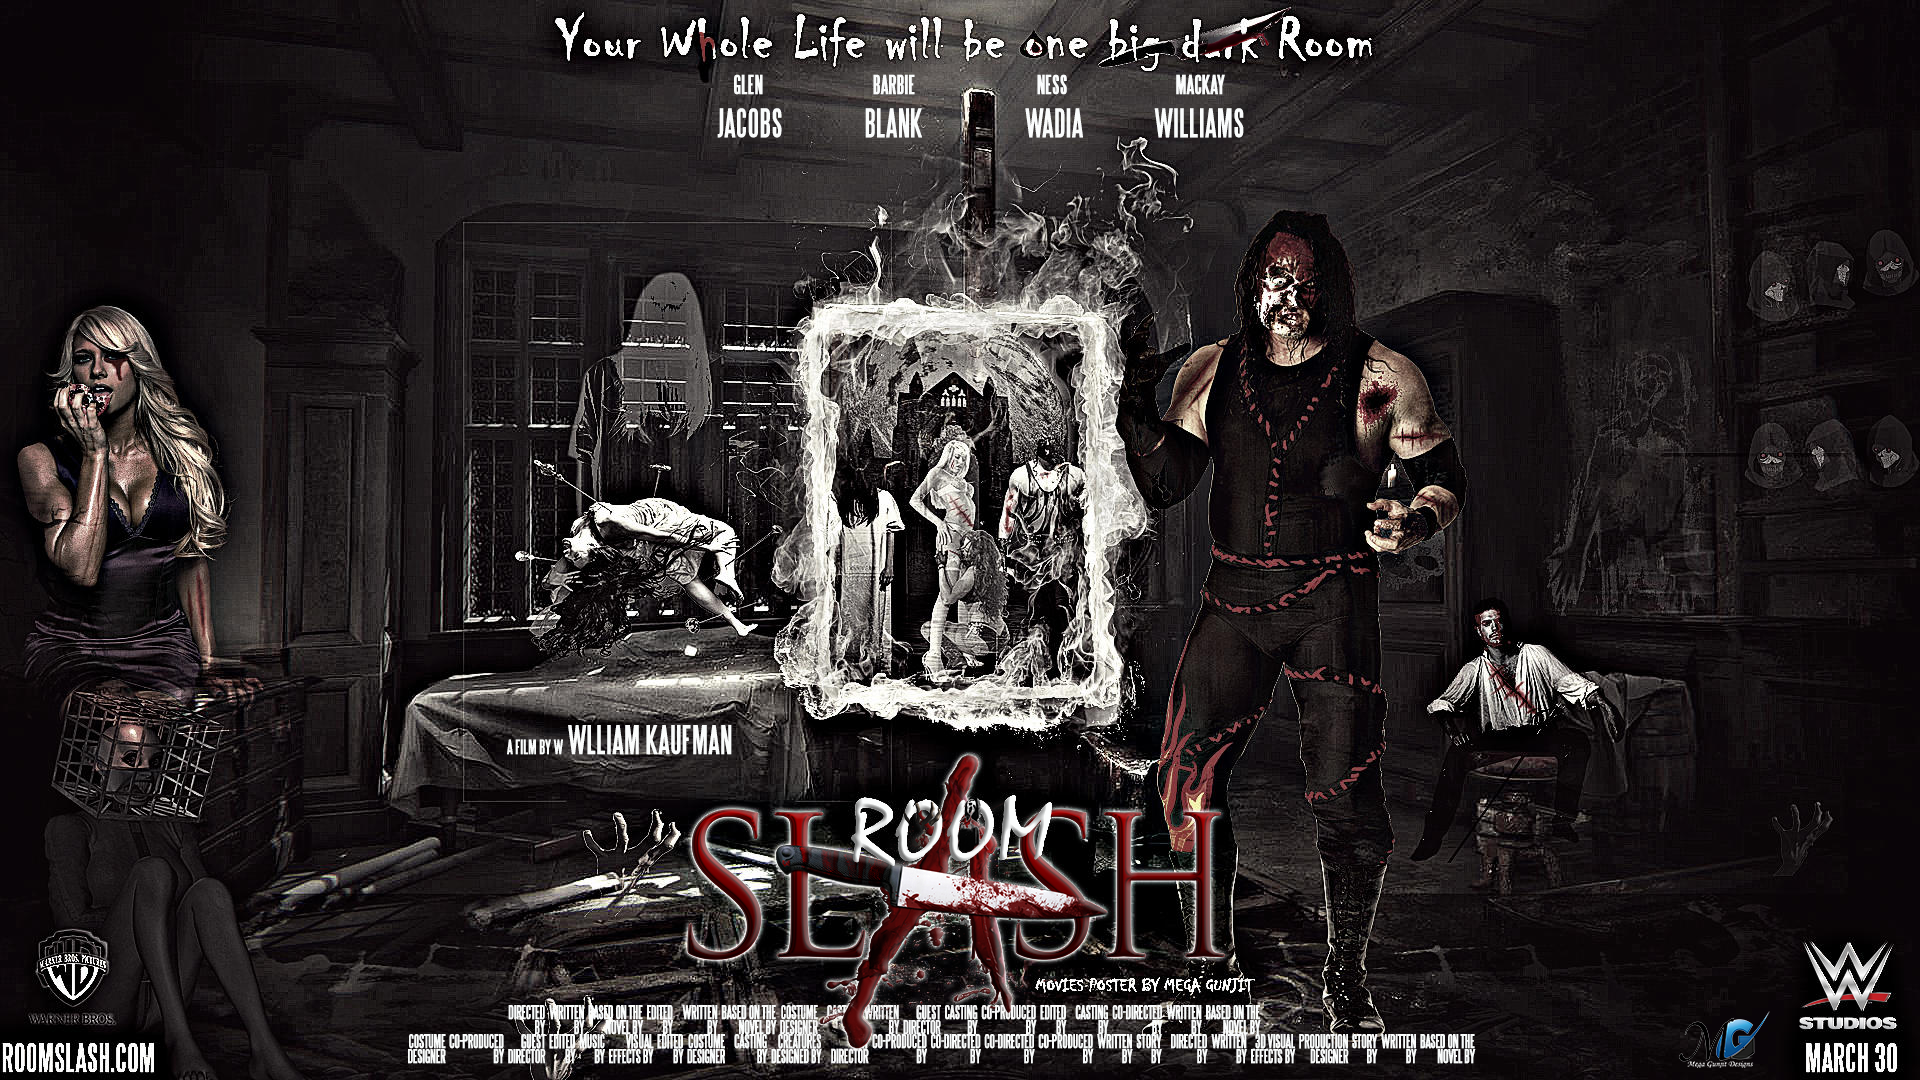 Wwe hd horror movie poster kane and kelly kelly by megagunjit on wwe hd horror movie poster kane and kelly kelly by megagunjit voltagebd Image collections